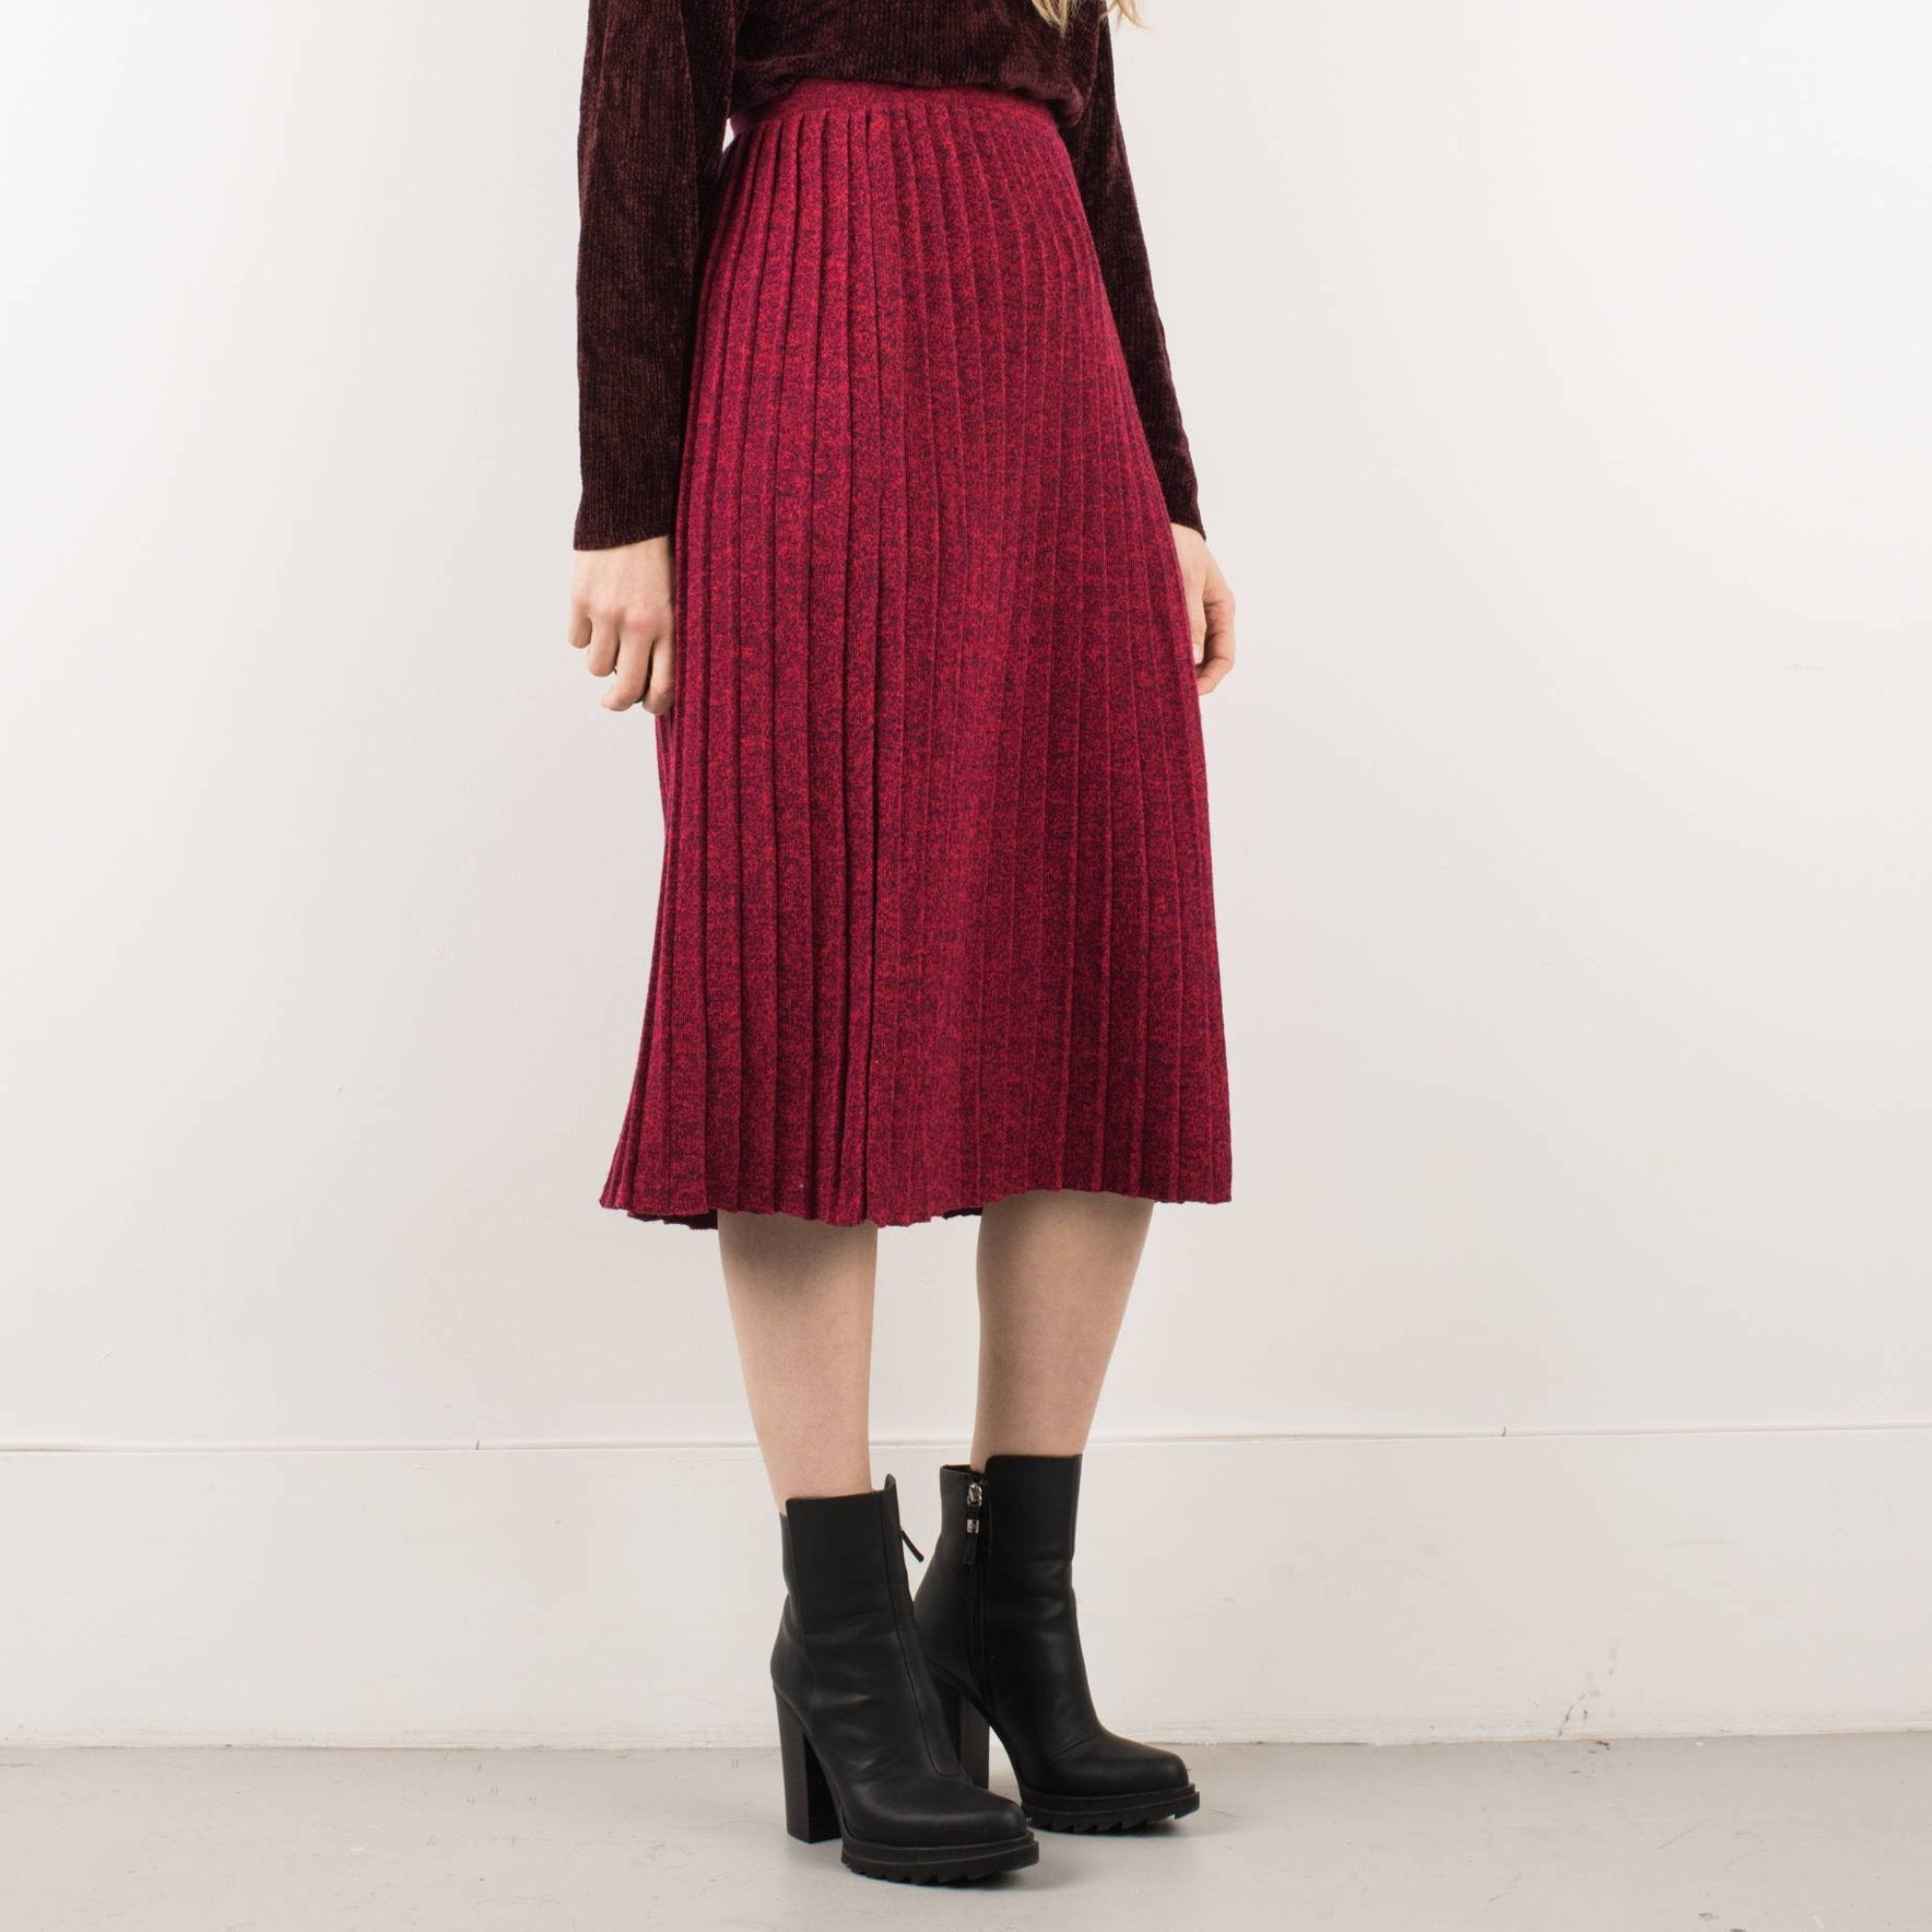 Vintage Red and Navy Pleated Knit School Girl Skirt / S